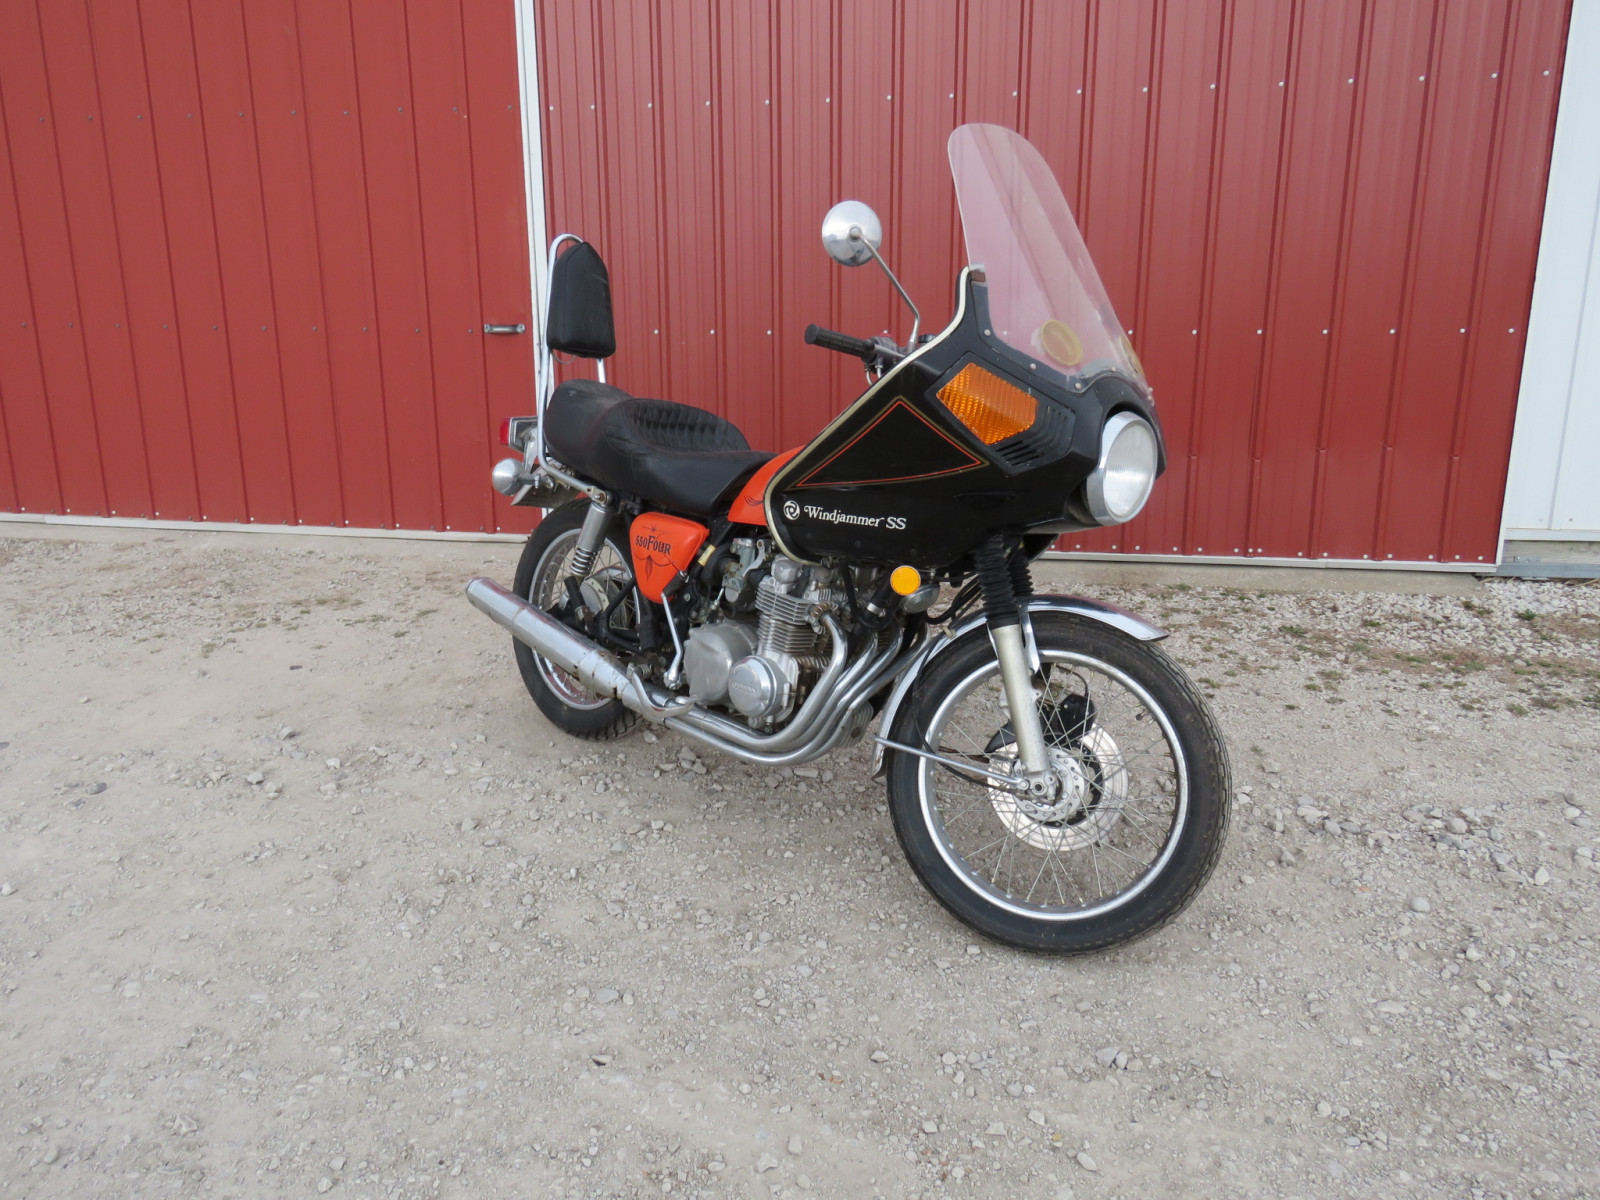 1975 Honda 550 Four Motorcycle - Image 1